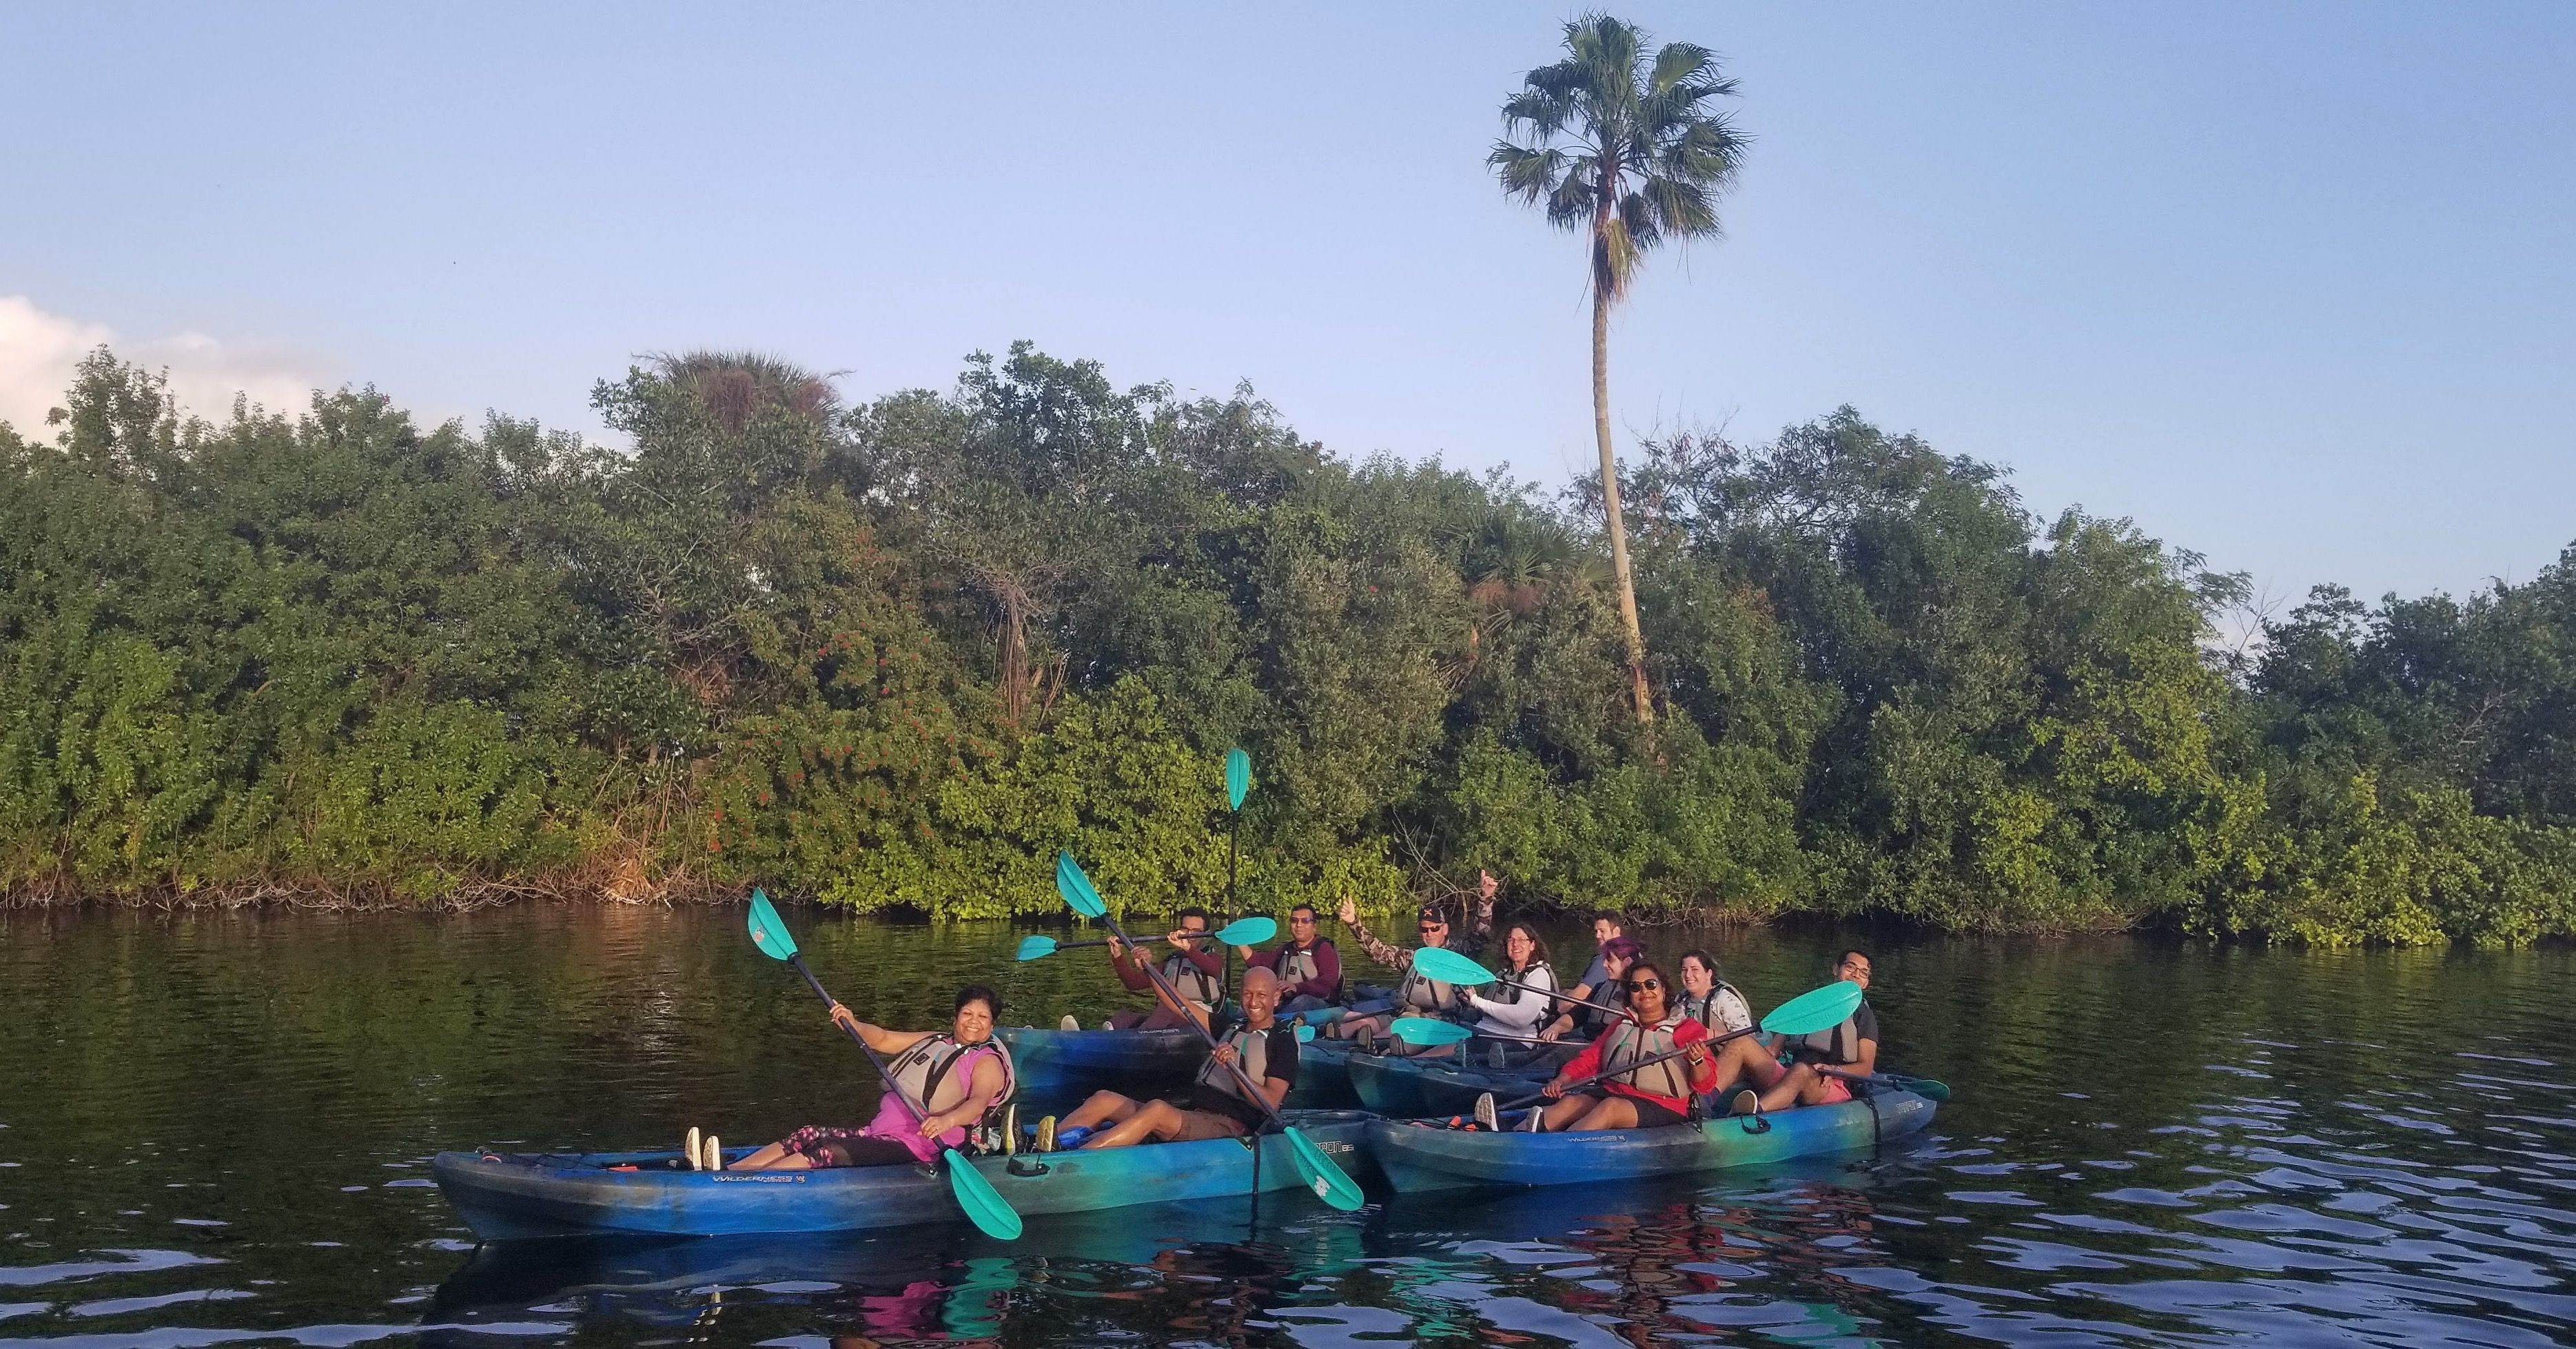 Kayak Tours In Titusville And Cocoa Beach Florida Cocoa Beach Kayaking Kayak Tours